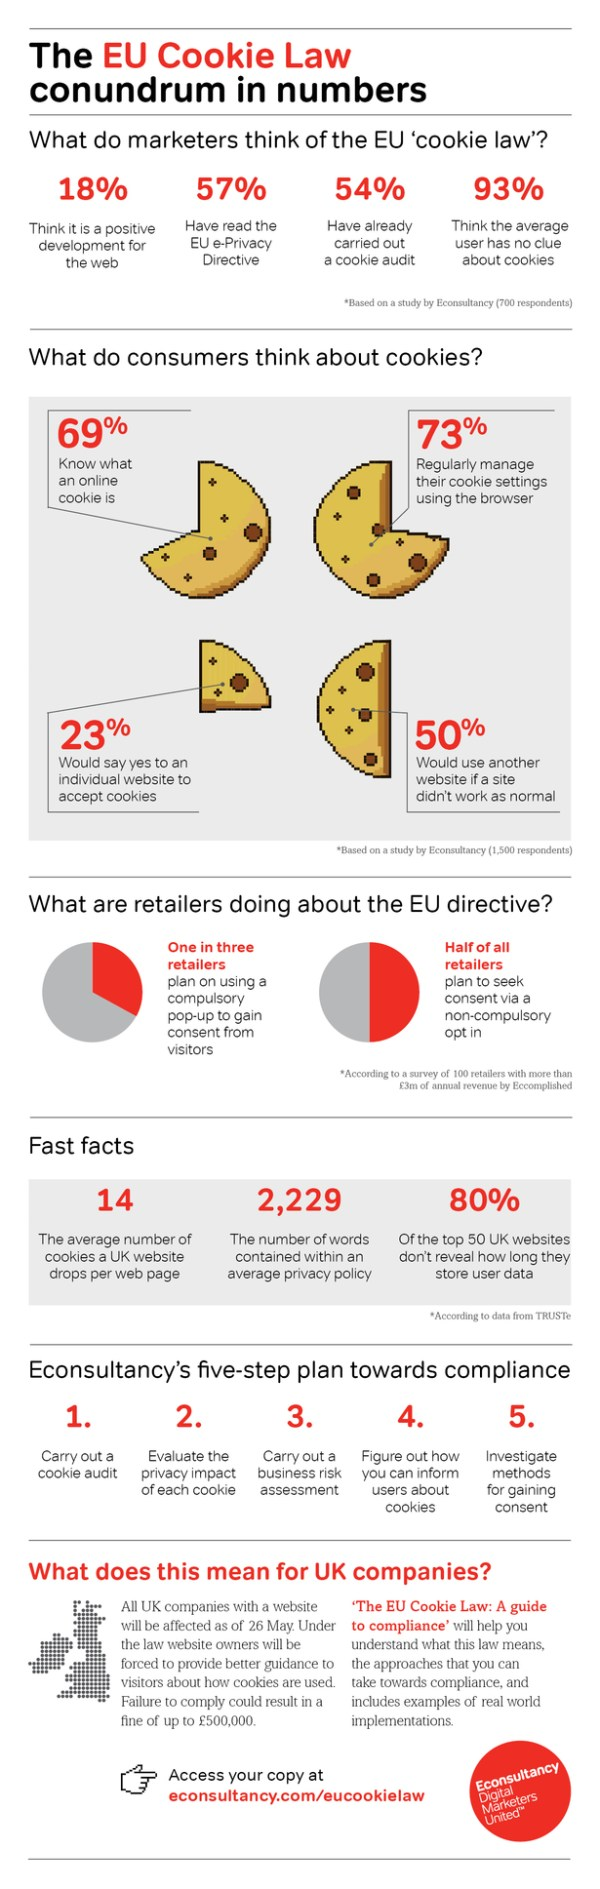 EU Cookie Law: The conundrum in numbers [Infographic]